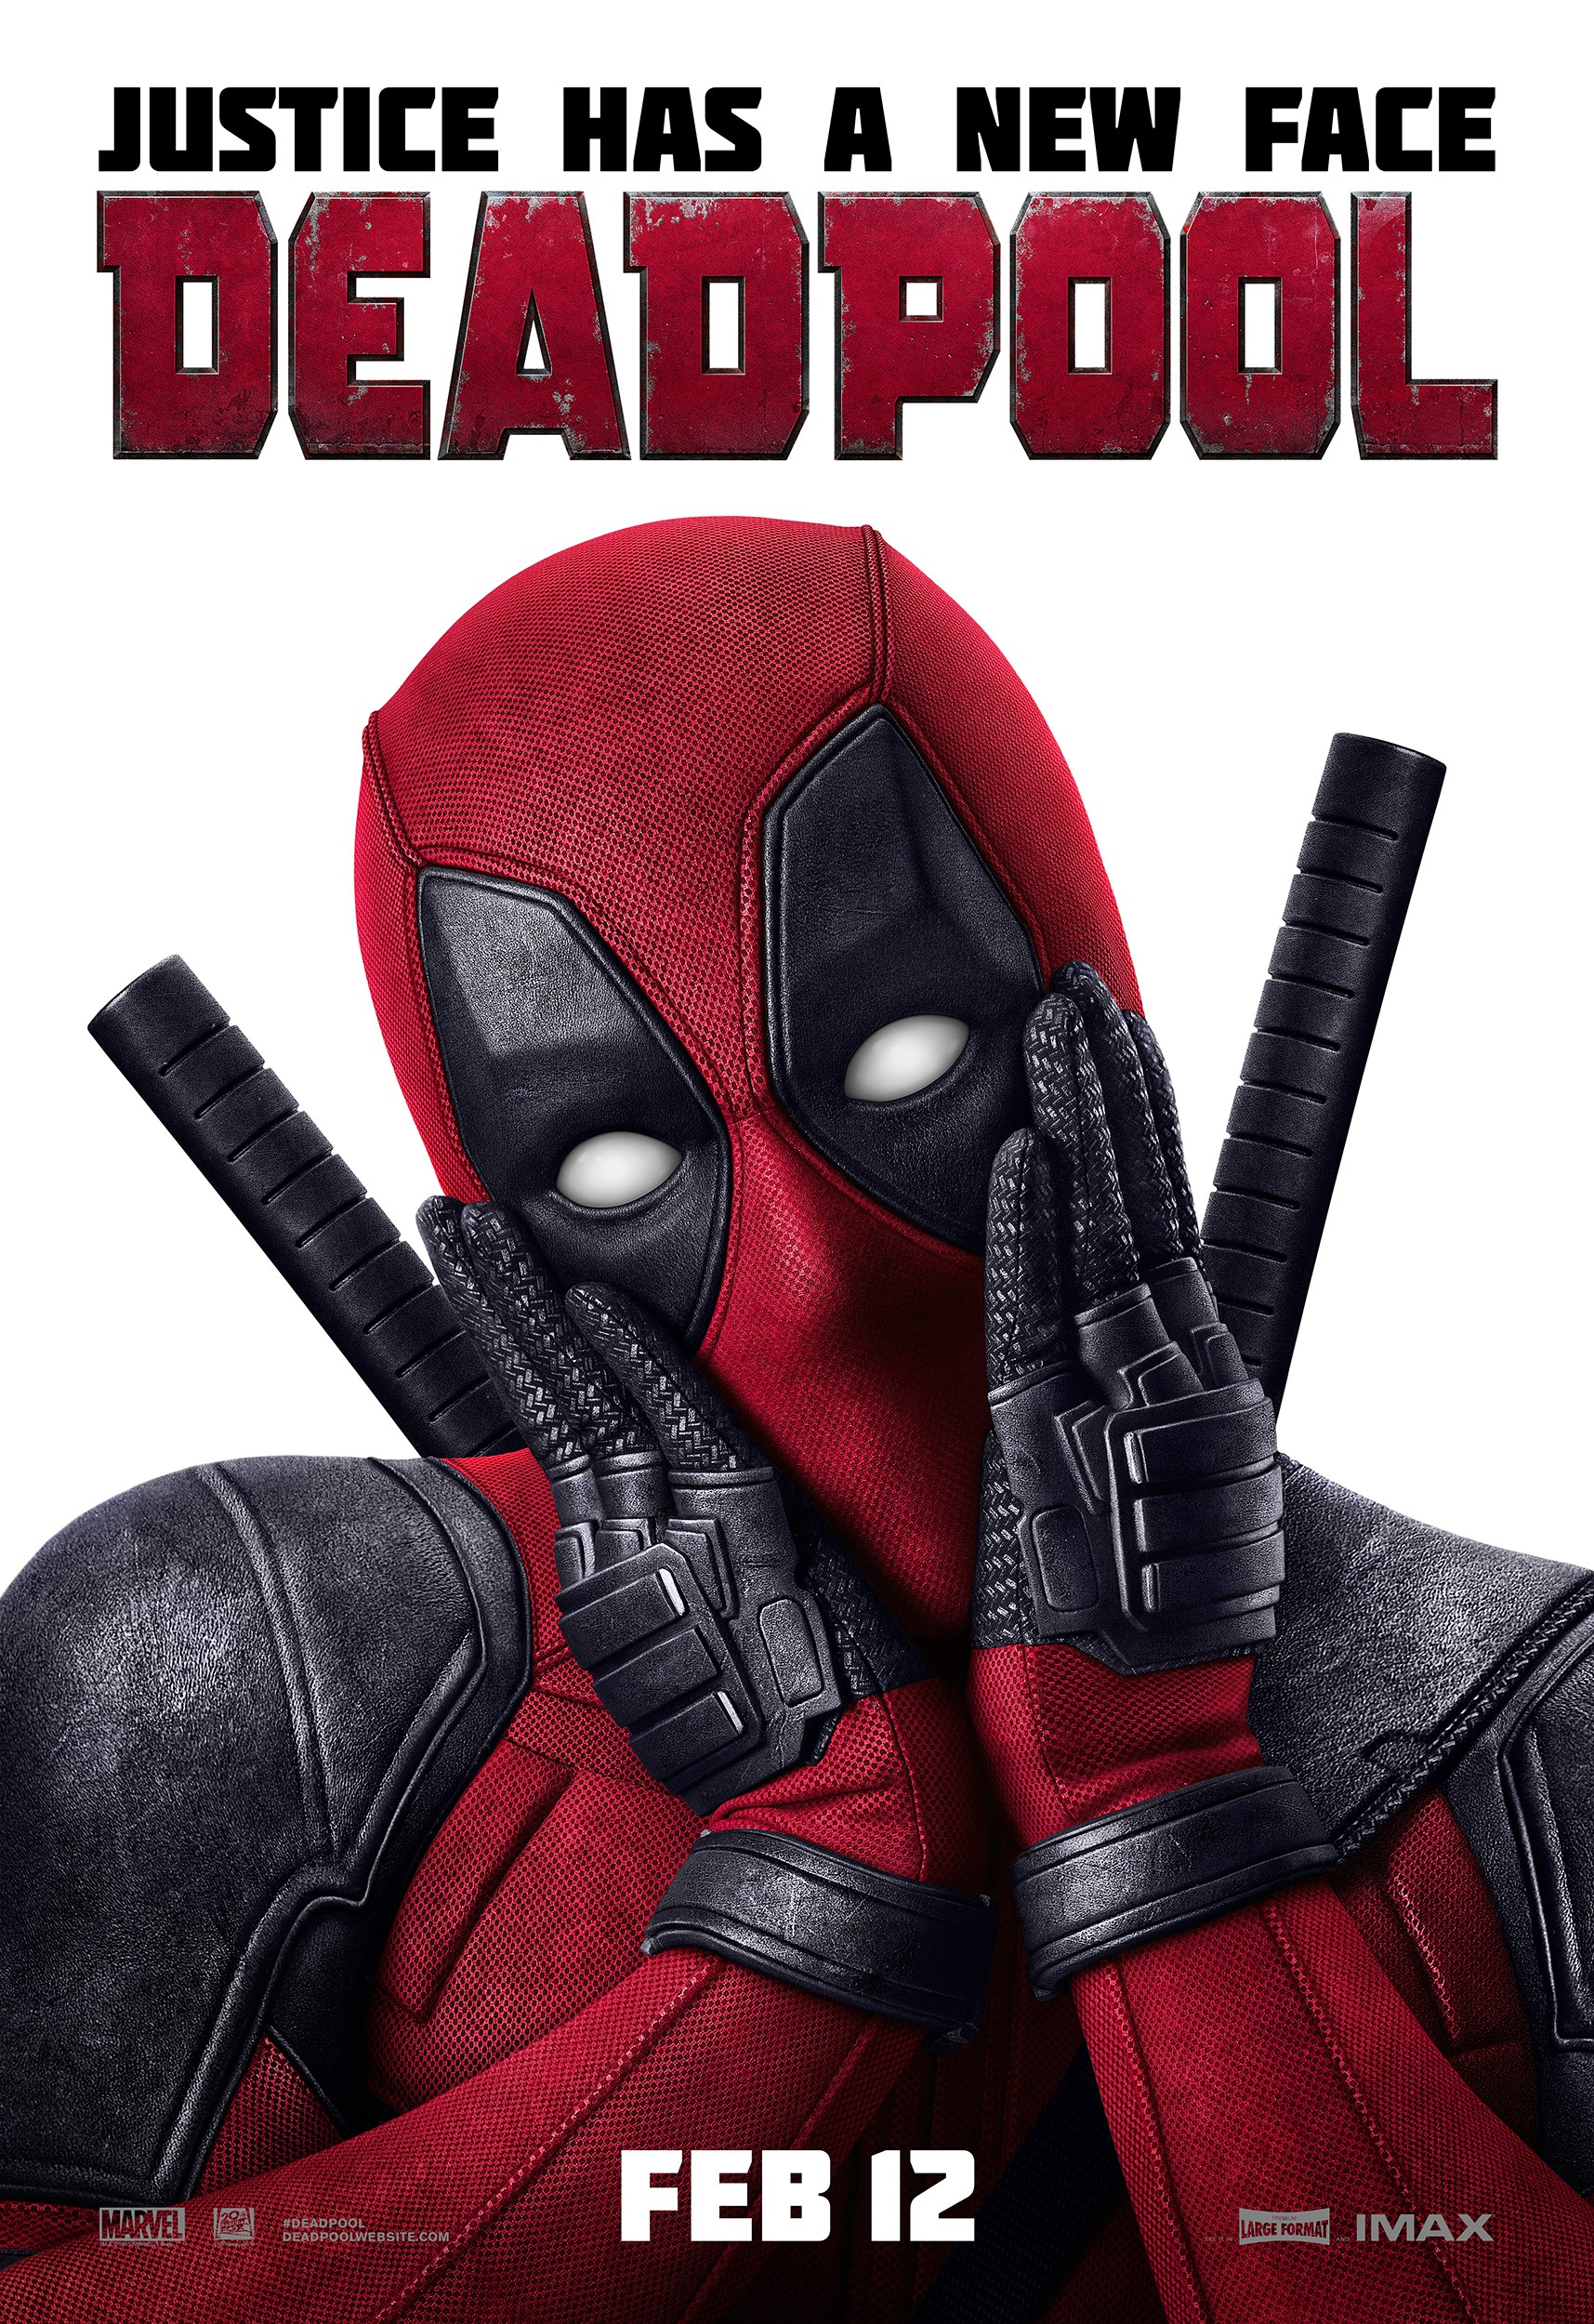 Image - Deadpool poster 3.jpg | X-Men Movies Wiki | FANDOM powered ...